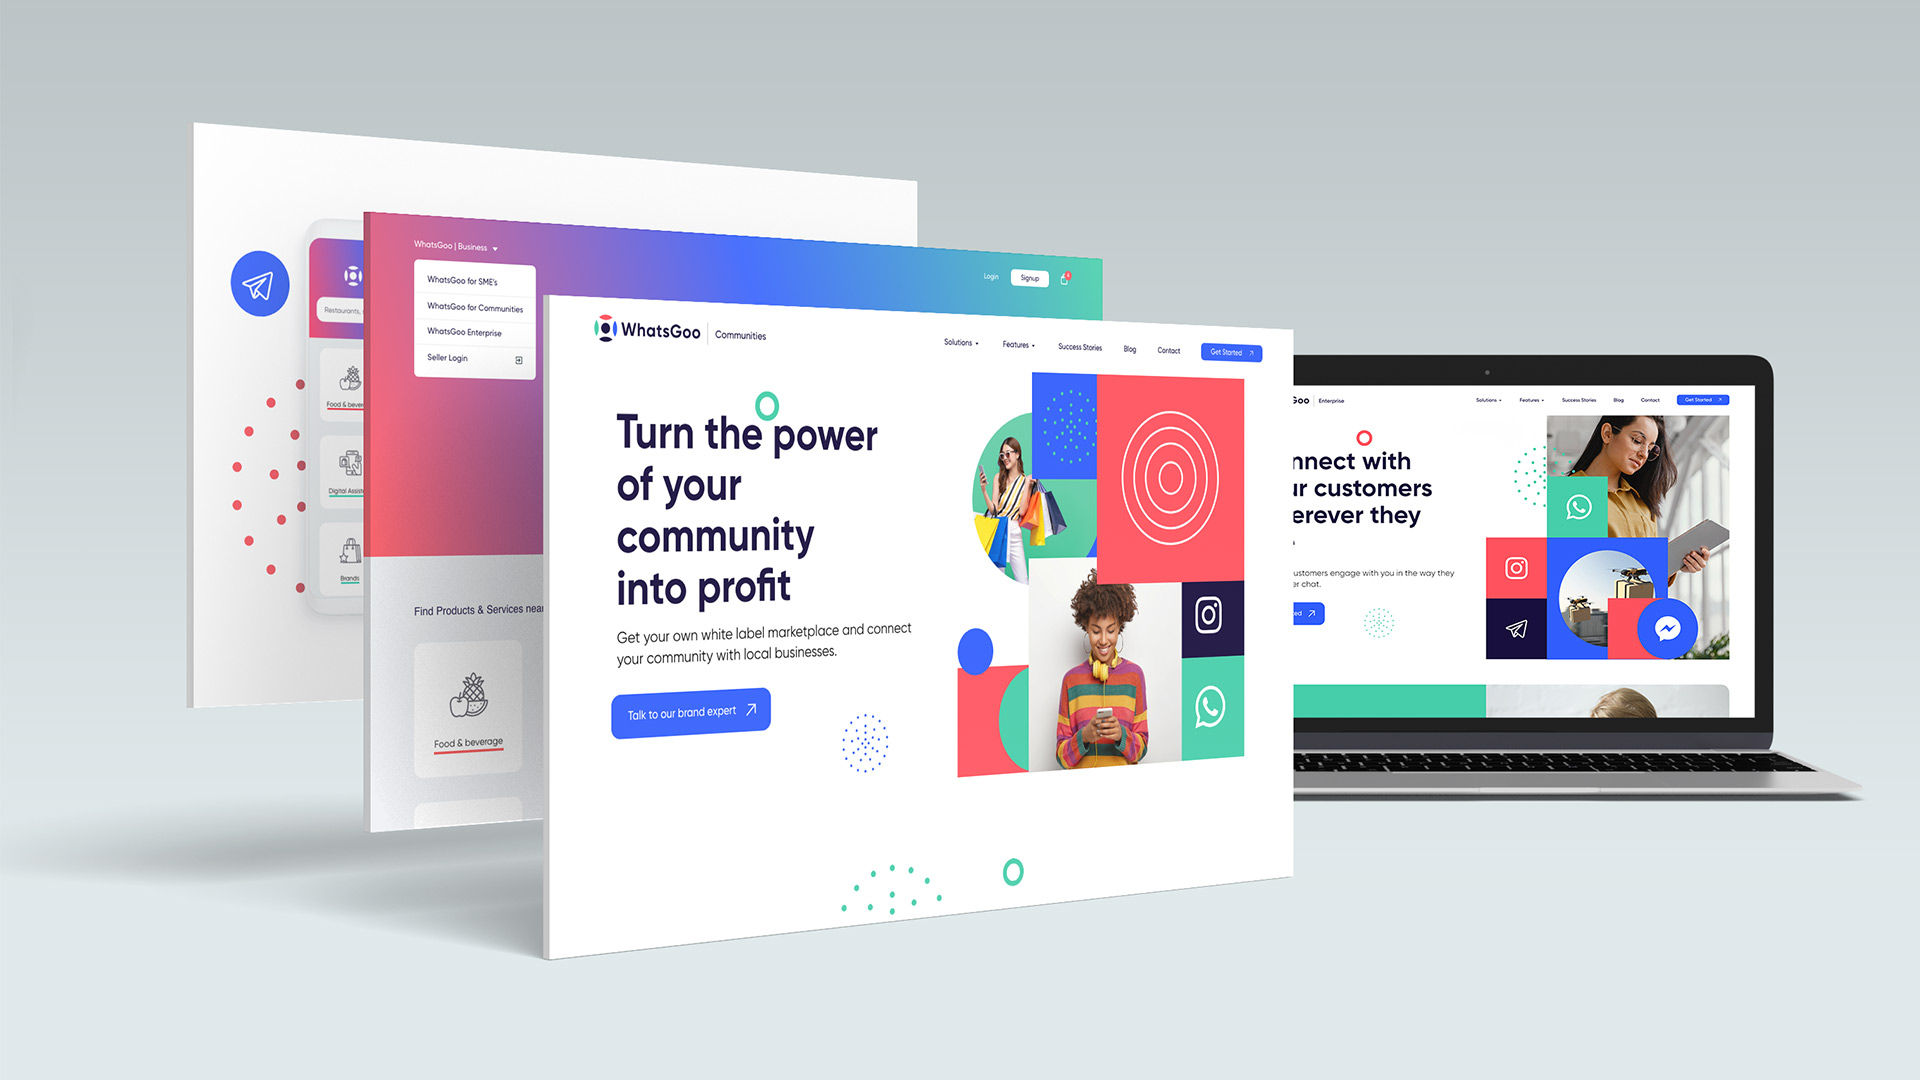 Contentus Web User Experience and Interface Design